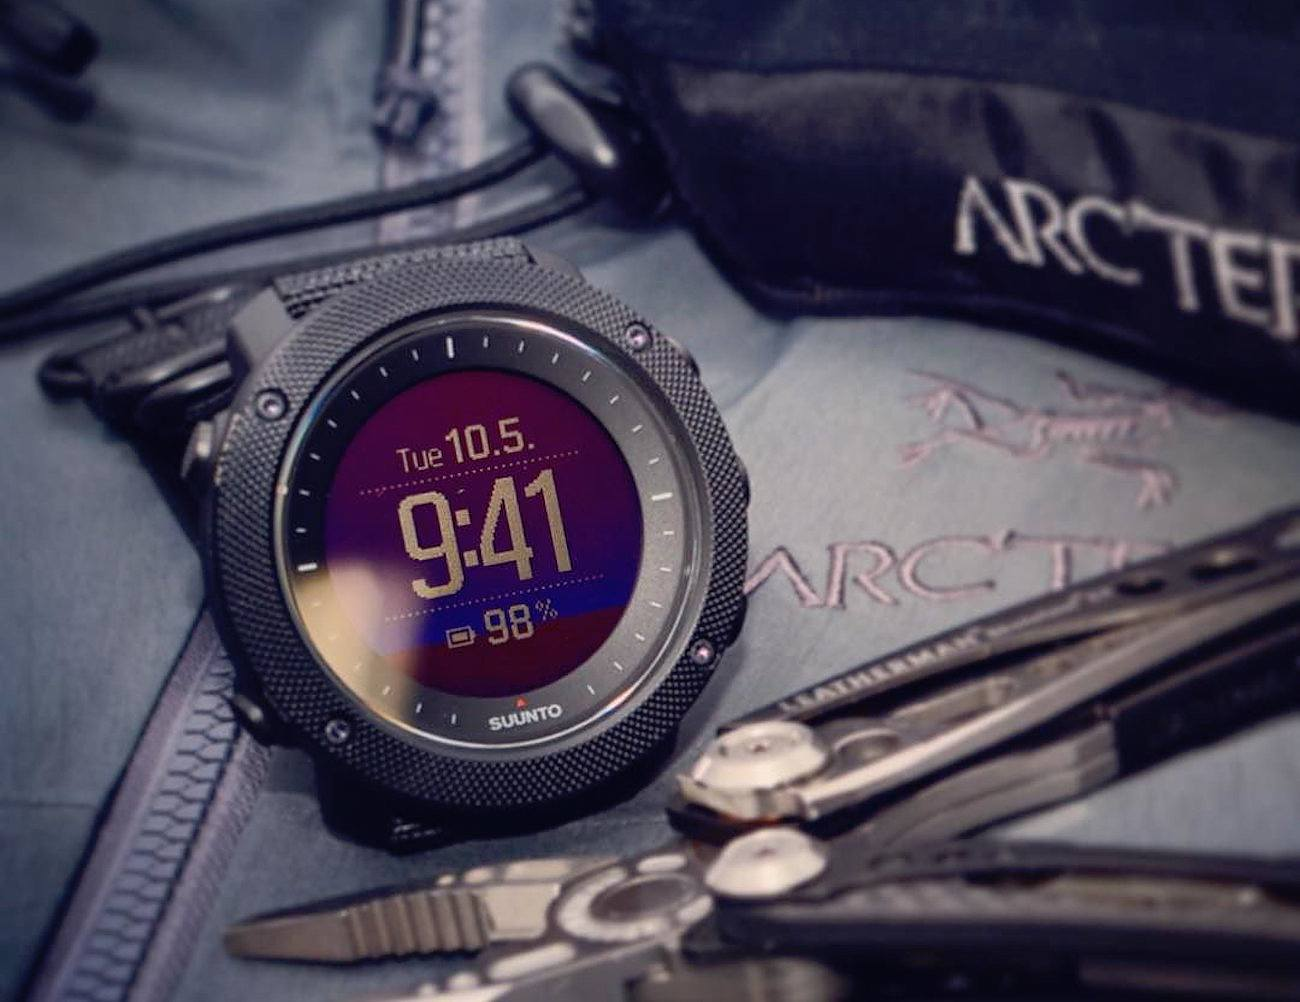 Suunto+Traverse+Alpha+Watch+With+Outdoor+Features